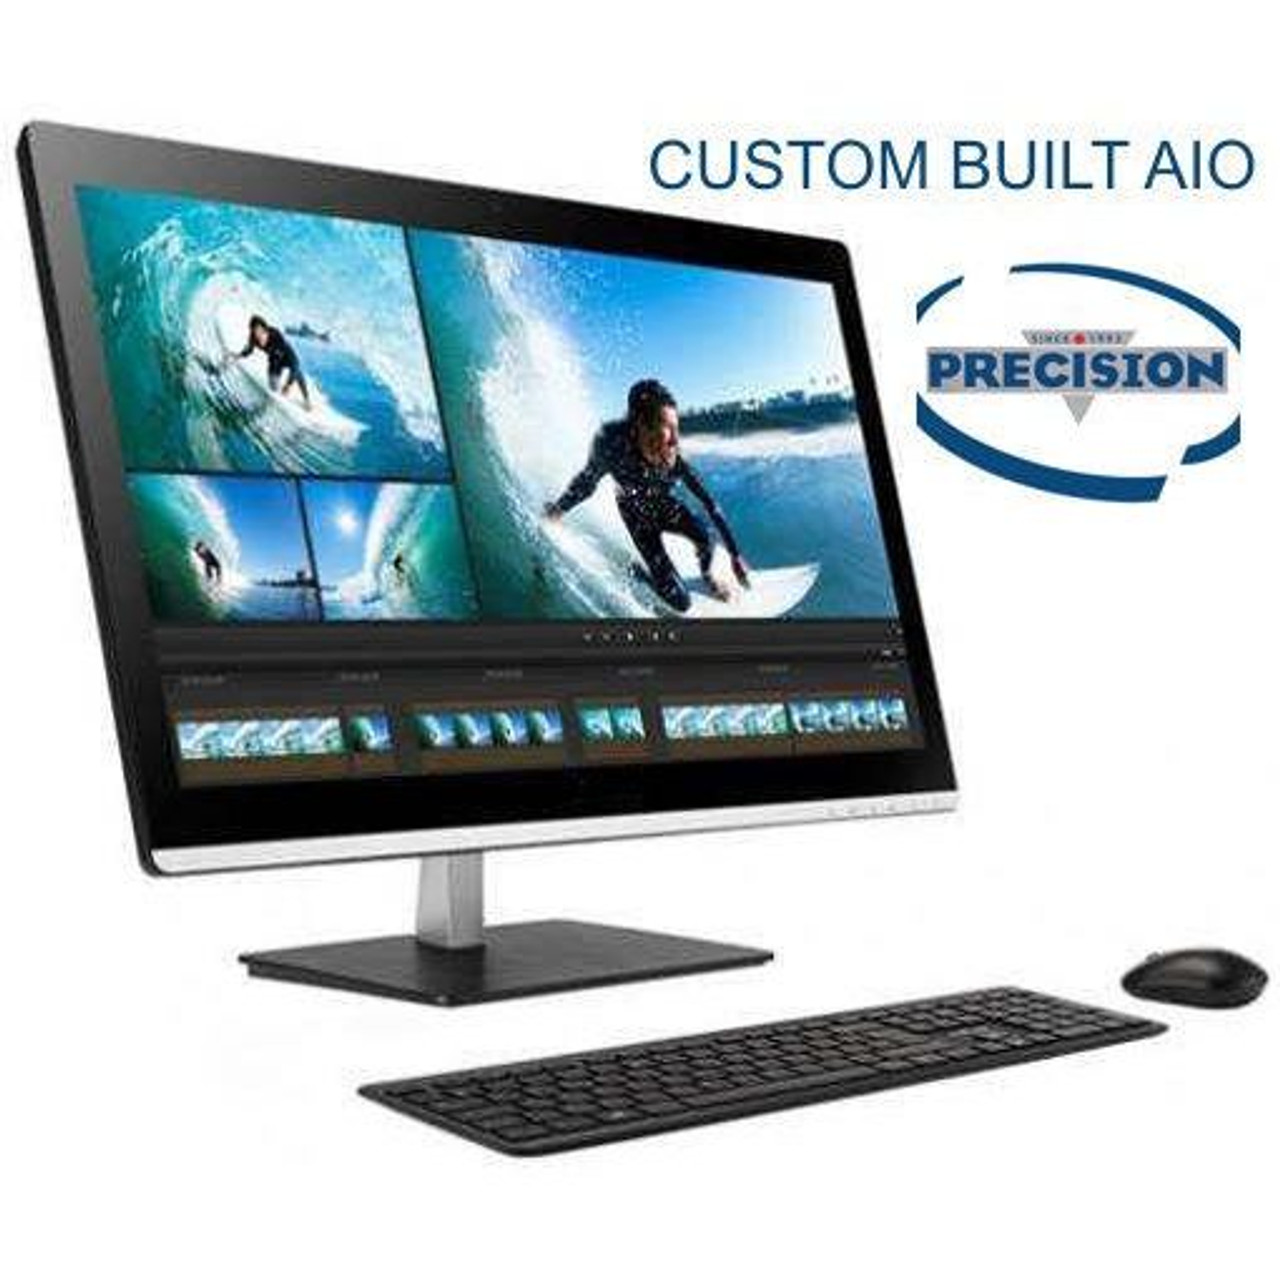 Precision AIO - Intel NUC